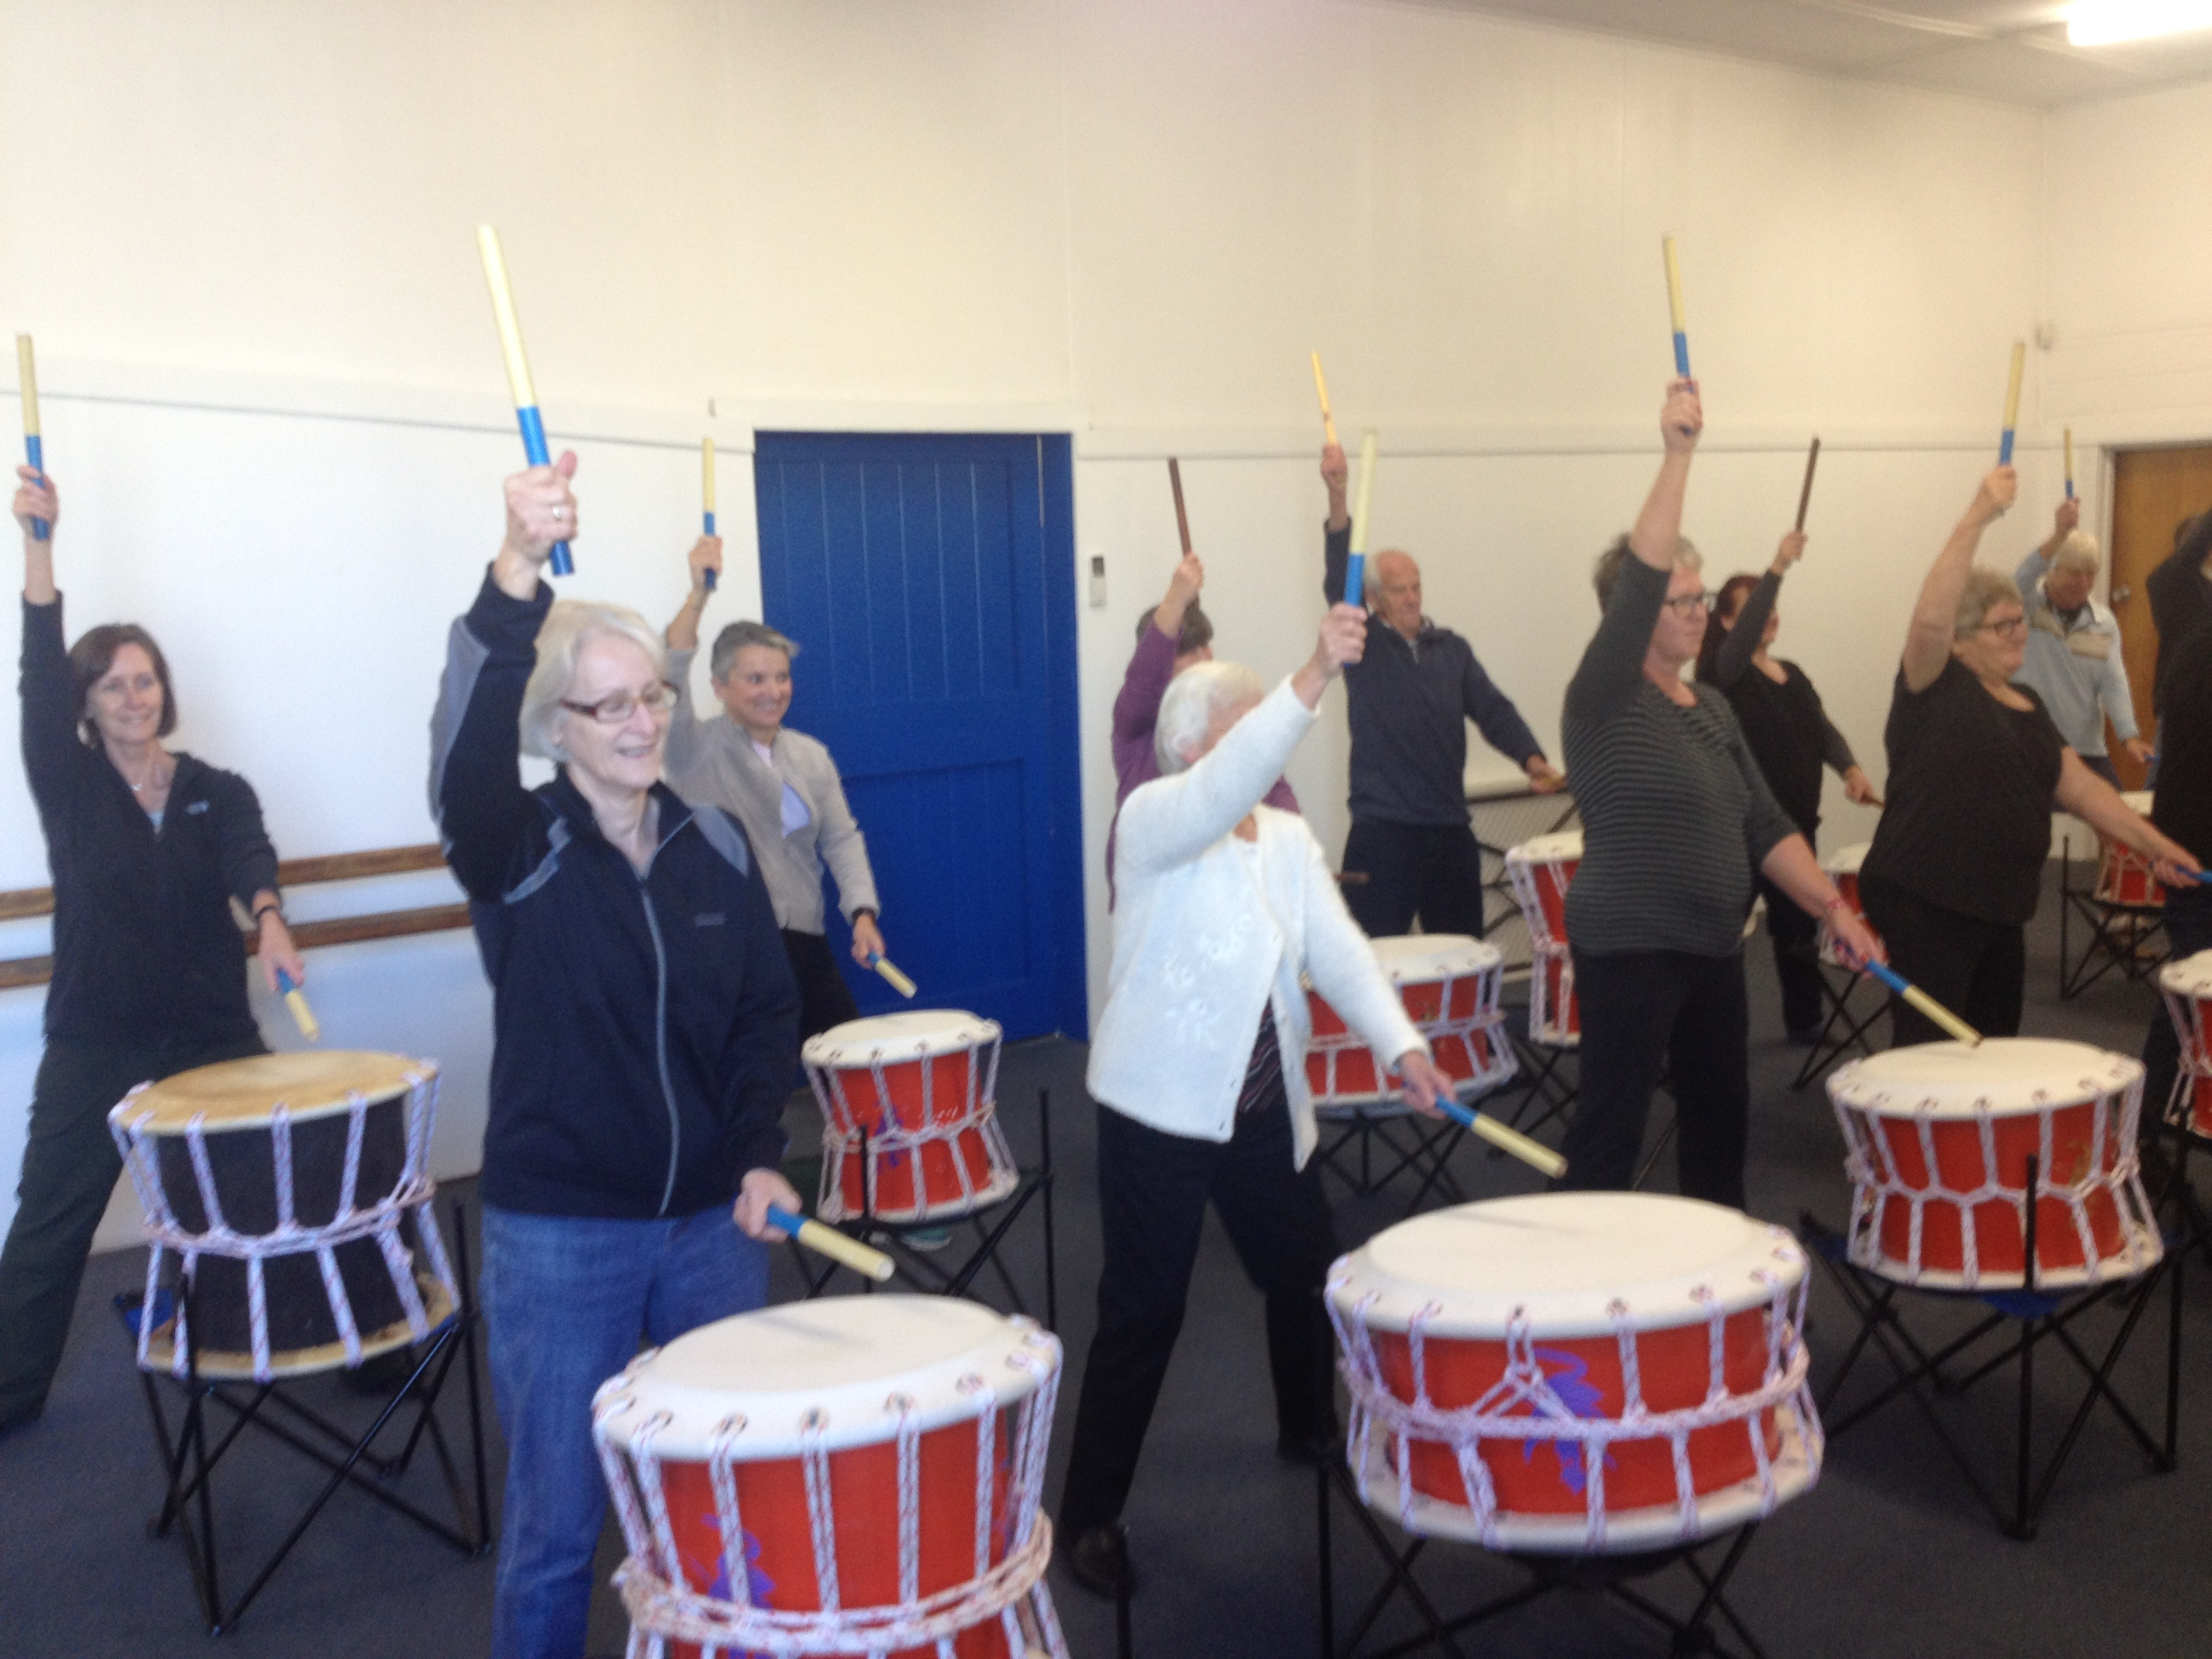 Taiko Drums at PCYC